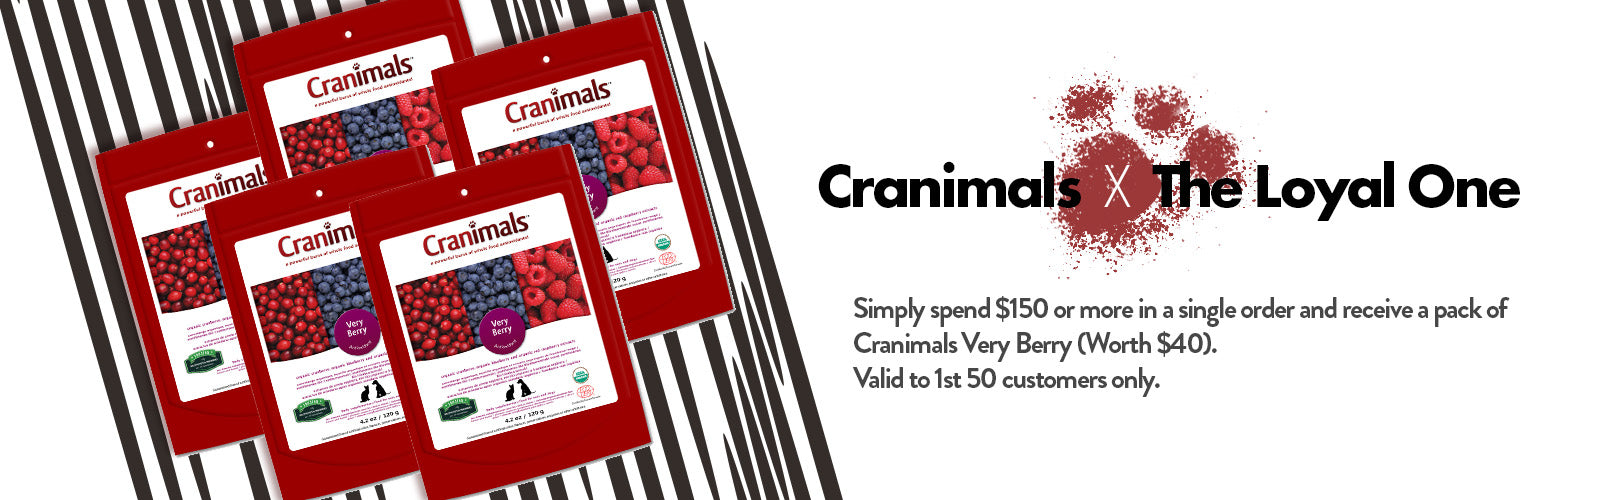 Spend $188 and receive a free pack of Cranimals worth $40